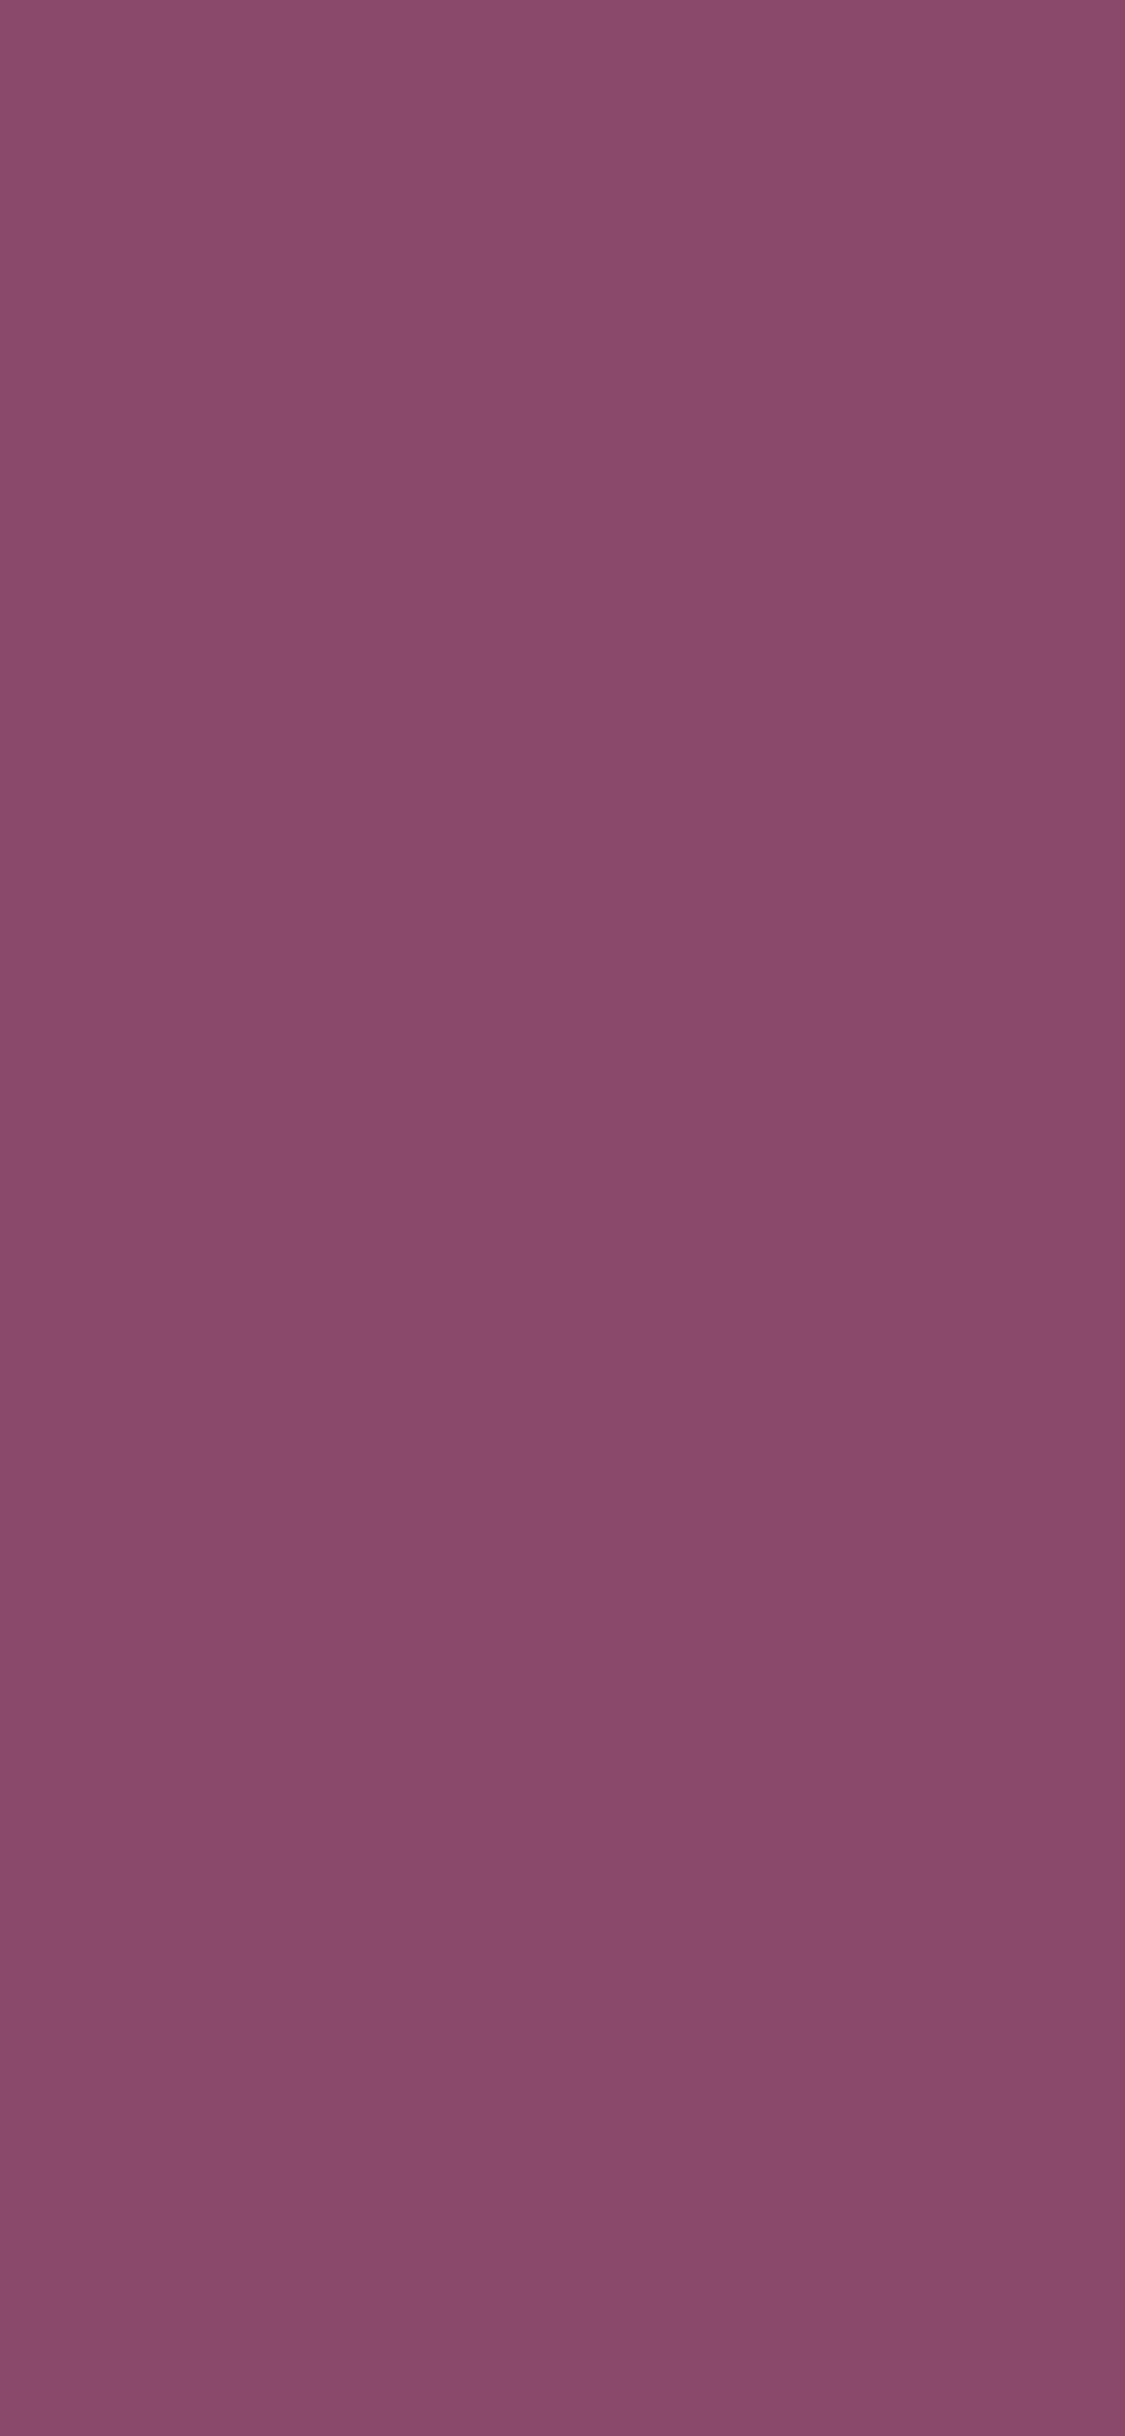 1125x2436 Twilight Lavender Solid Color Background